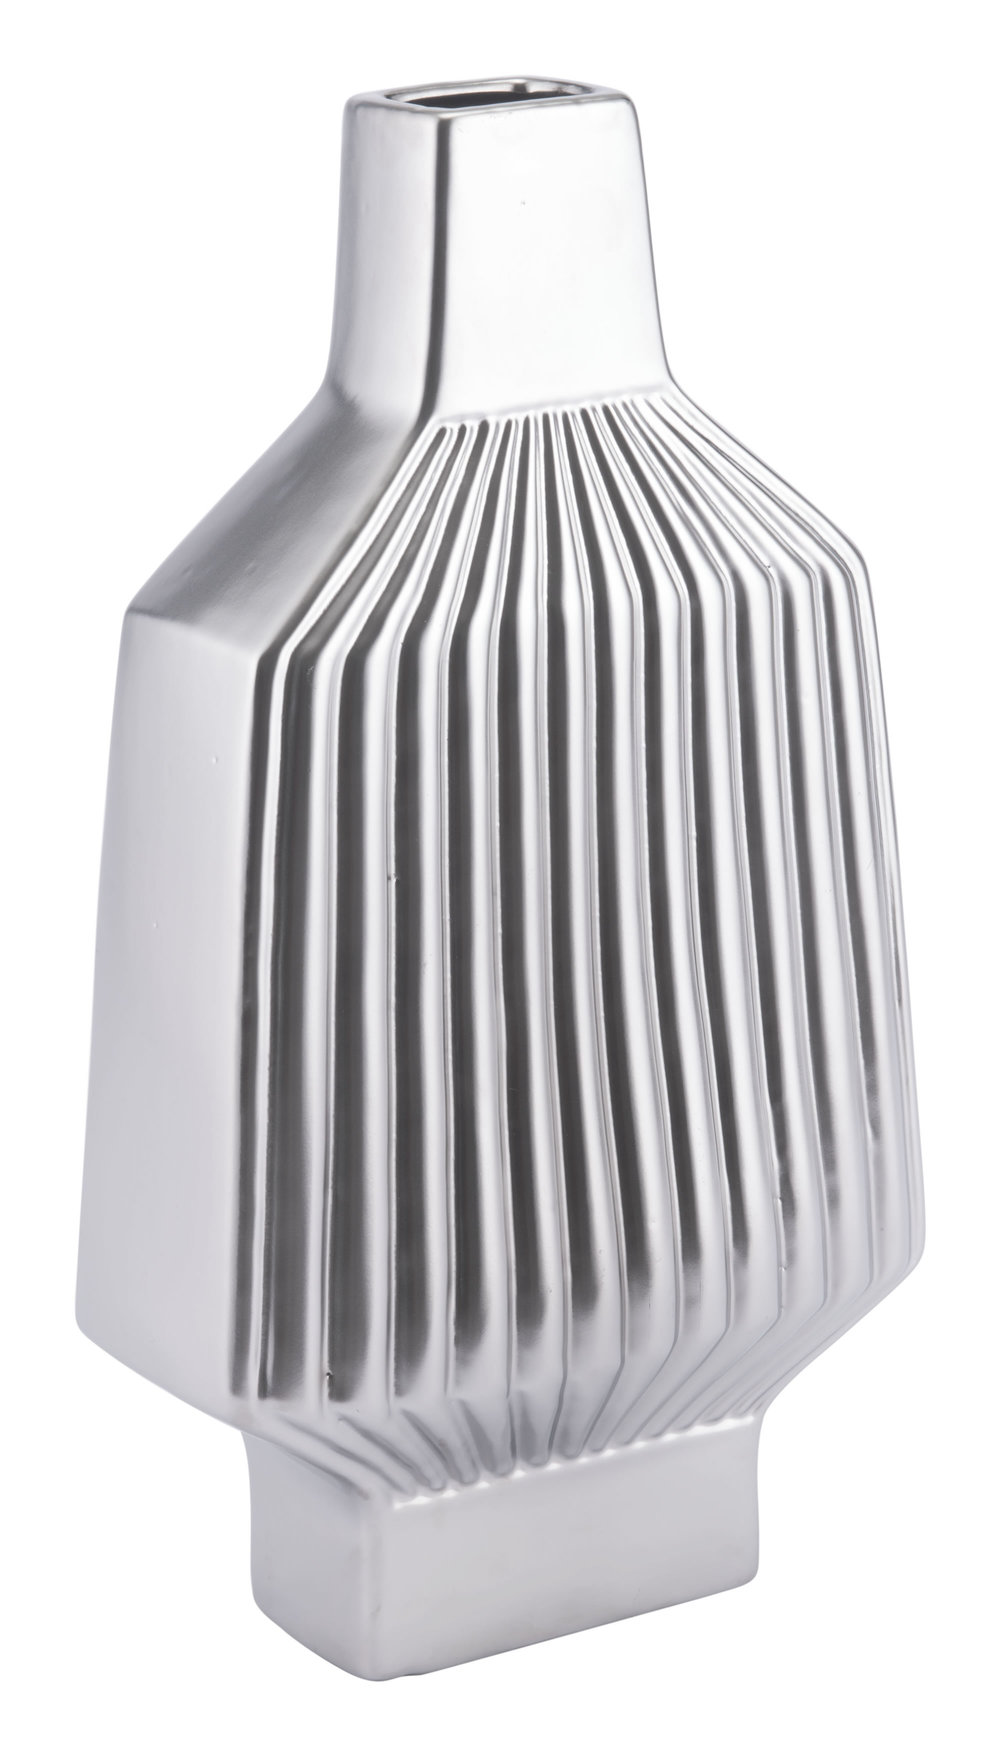 Zuo Modern Contemporary - Large Tower Vase Matte Silver